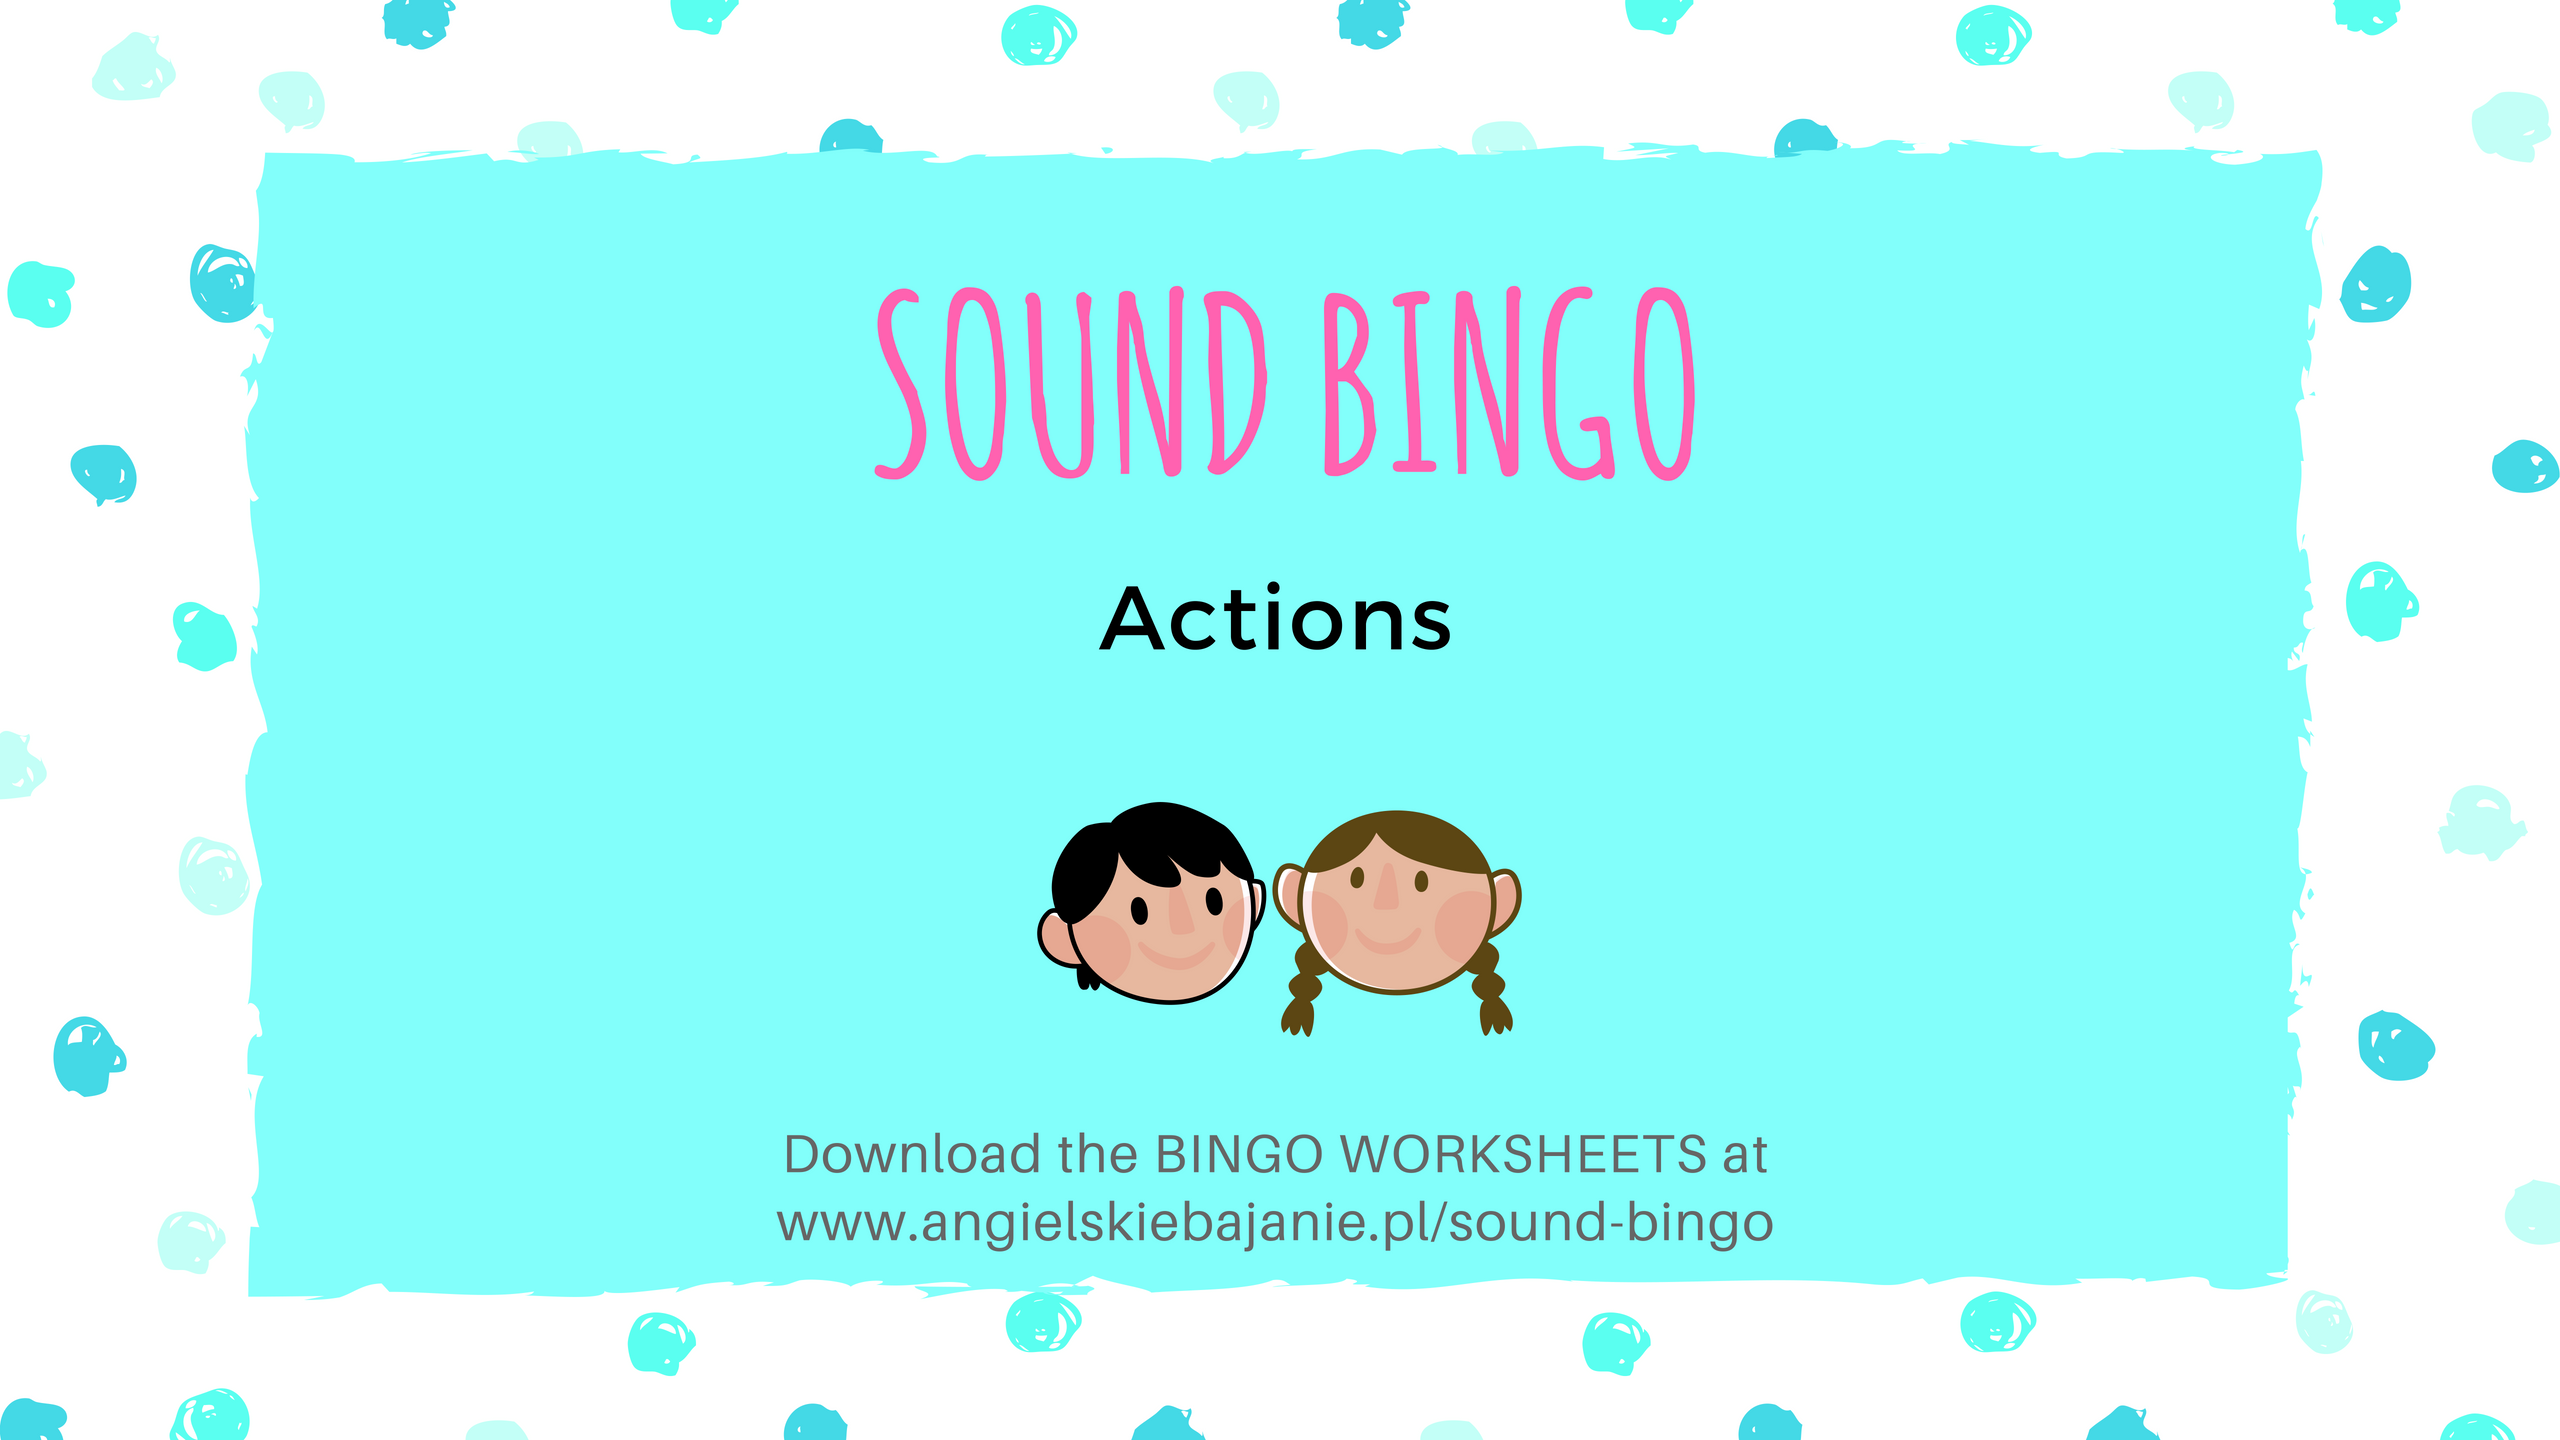 Bingo worksheet download